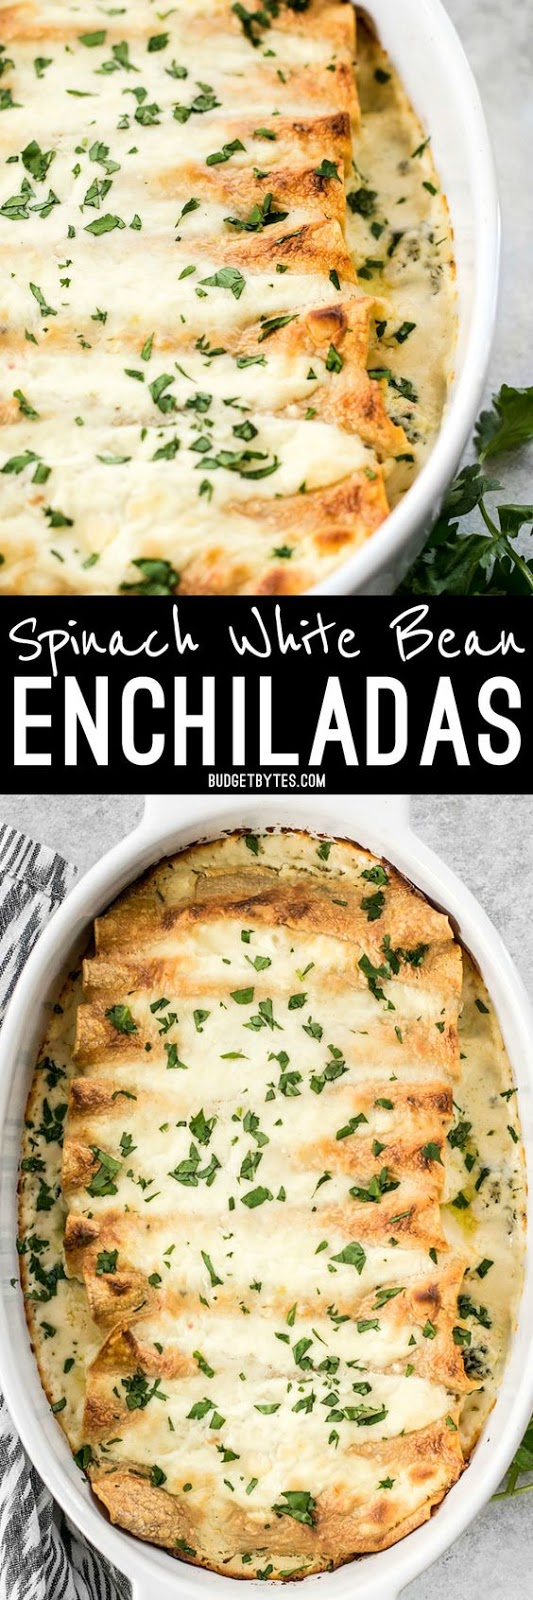 SPINACH WHITE BEAN ENCHILADAS WITH PEPPER JACK SAUCE   #DESSERTS #HEALTHYFOOD #EASYRECIPES #DINNER #LAUCH #DELICIOUS #EASY #HOLIDAYS #RECIPE #SPECIALDIET #WORLDCUISINE #CAKE #APPETIZERS #HEALTHYRECIPES #DRINKS #COOKINGMETHOD #ITALIANRECIPES #MEAT #VEGANRECIPES #COOKIES #PASTA #FRUIT #SALAD #SOUPAPPETIZERS #NONALCOHOLICDRINKS #MEALPLANNING #VEGETABLES #SOUP #PASTRY #CHOCOLATE #DAIRY #ALCOHOLICDRINKS #BULGURSALAD #BAKING #SNACKS #BEEFRECIPES #MEATAPPETIZERS #MEXICANRECIPES #BREAD #ASIANRECIPES #SEAFOODAPPETIZERS #MUFFINS #BREAKFASTANDBRUNCH #CONDIMENTS #CUPCAKES #CHEESE #CHICKENRECIPES #PIE #COFFEE #NOBAKEDESSERTS #HEALTHYSNACKS #SEAFOOD #GRAIN #LUNCHESDINNERS #MEXICAN #QUICKBREAD #LIQUOR